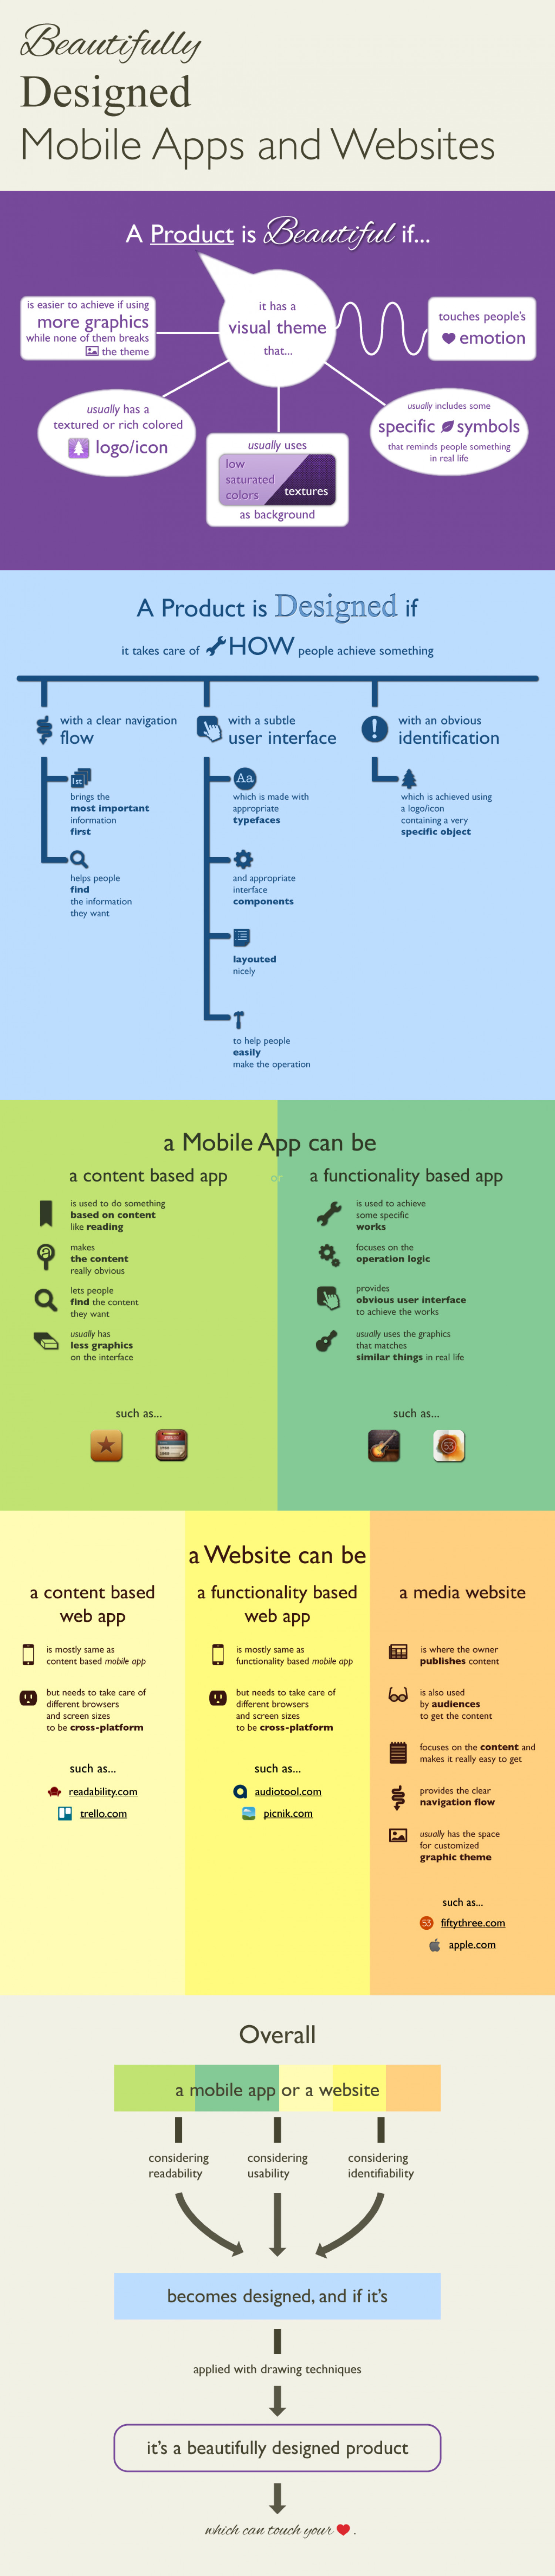 Beautifully Designed Mobile Apps and Websites Infographic